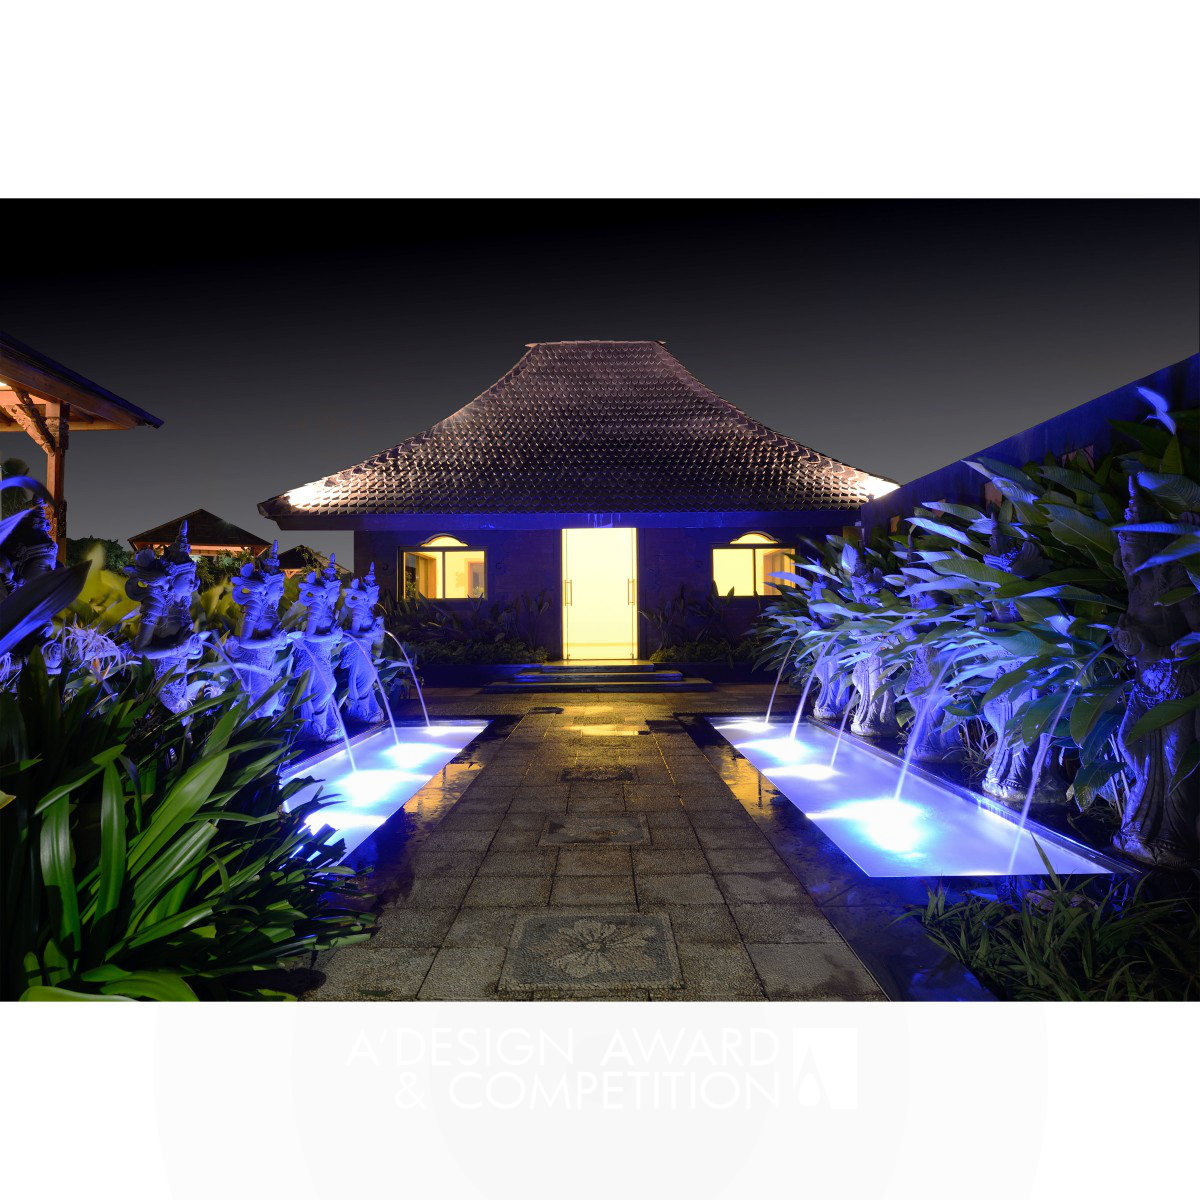 Surga Tropis Club House and Landscaping